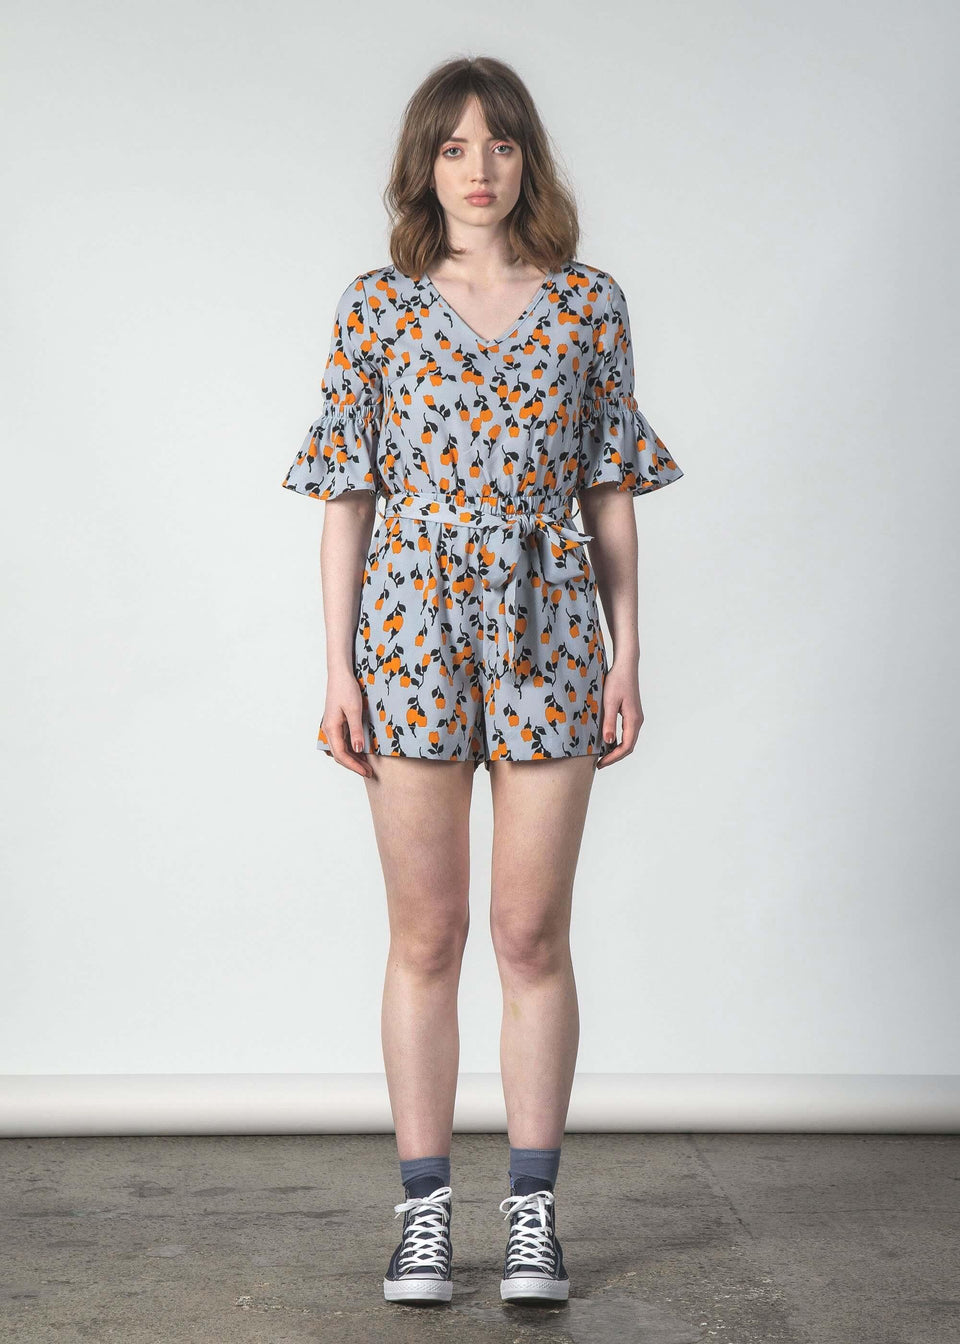 Tresspass Playsuit Wallflower - Saint Street